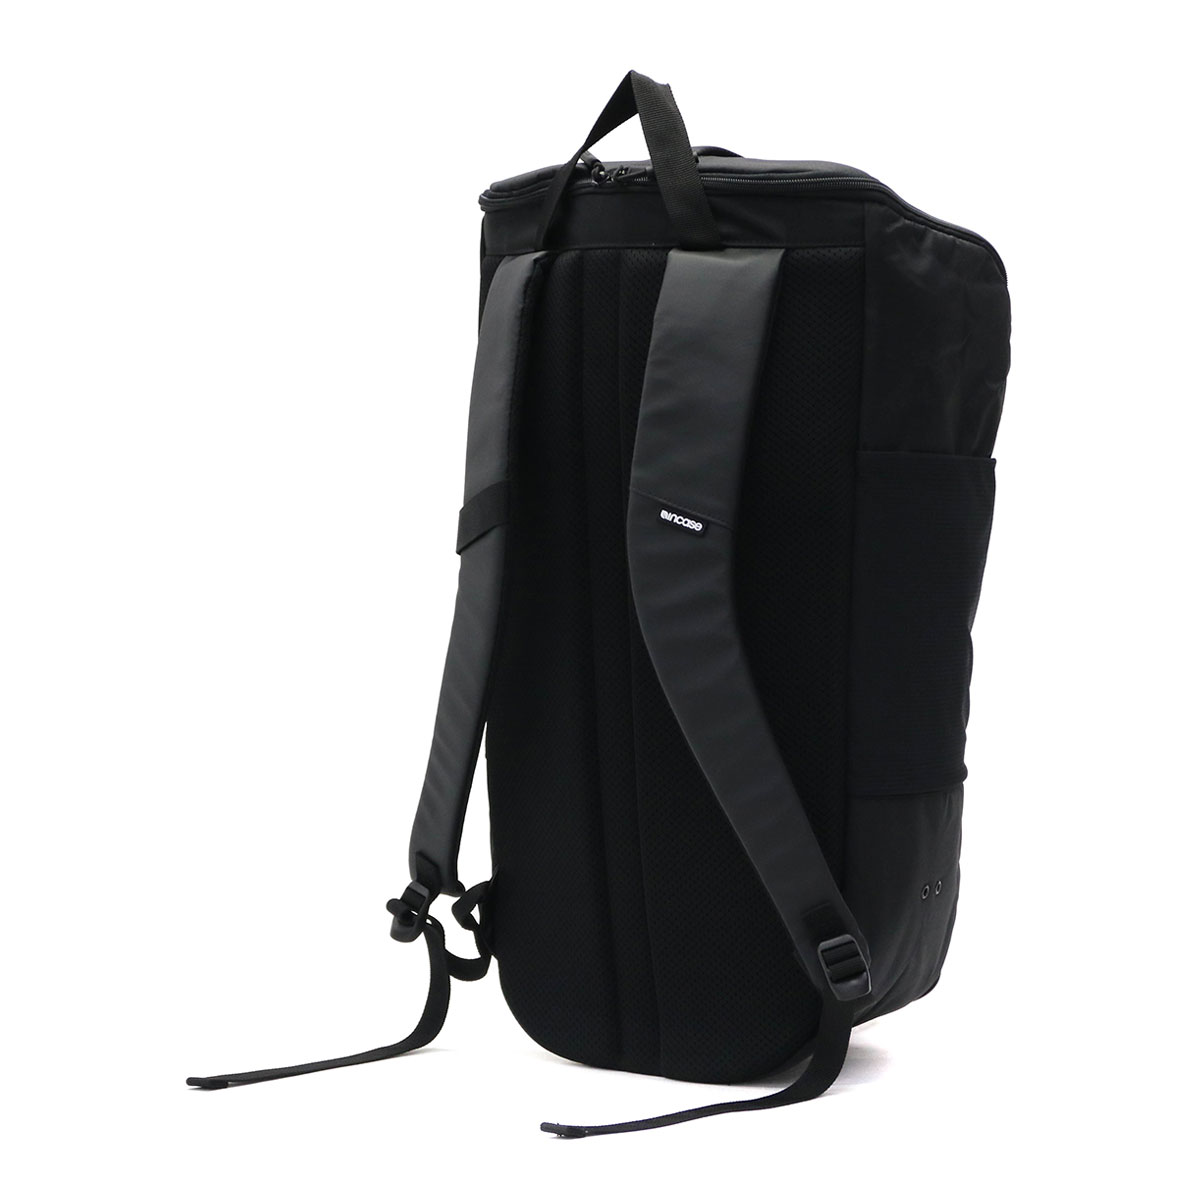 Incase Bag Backpack Rucksack Sport Field Lite Men S Women Large Capacity Gym Sports Travel 37173010